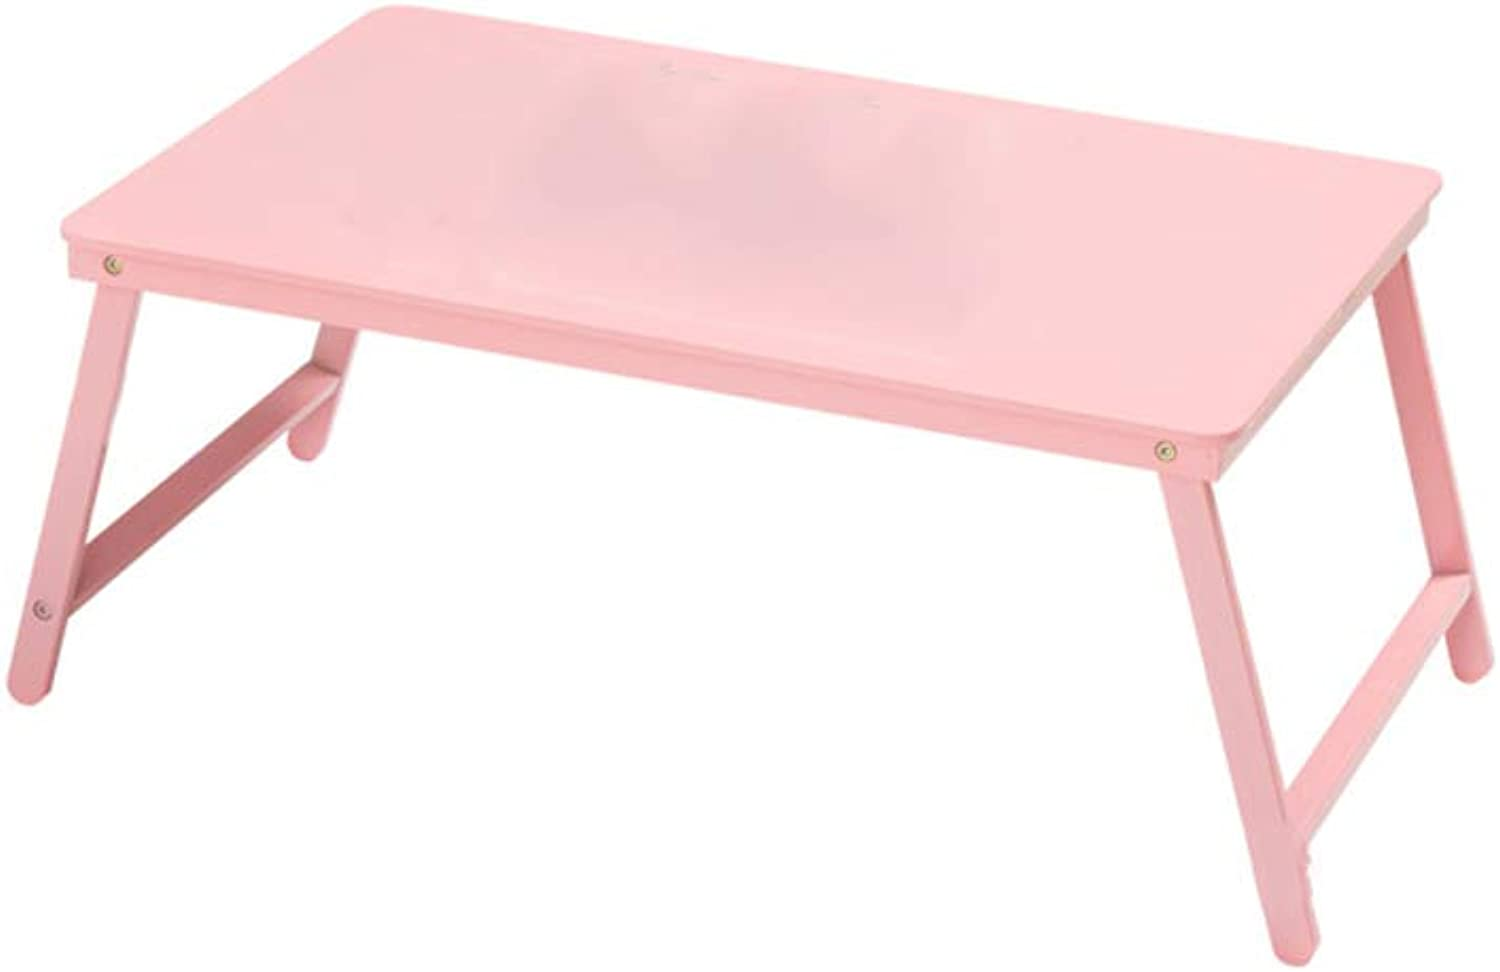 YAXIAO-table Folding Laptop Desk Bed with Small Table Dormitory Lazy Simple Desk Study Table Pink 27x39x60cm